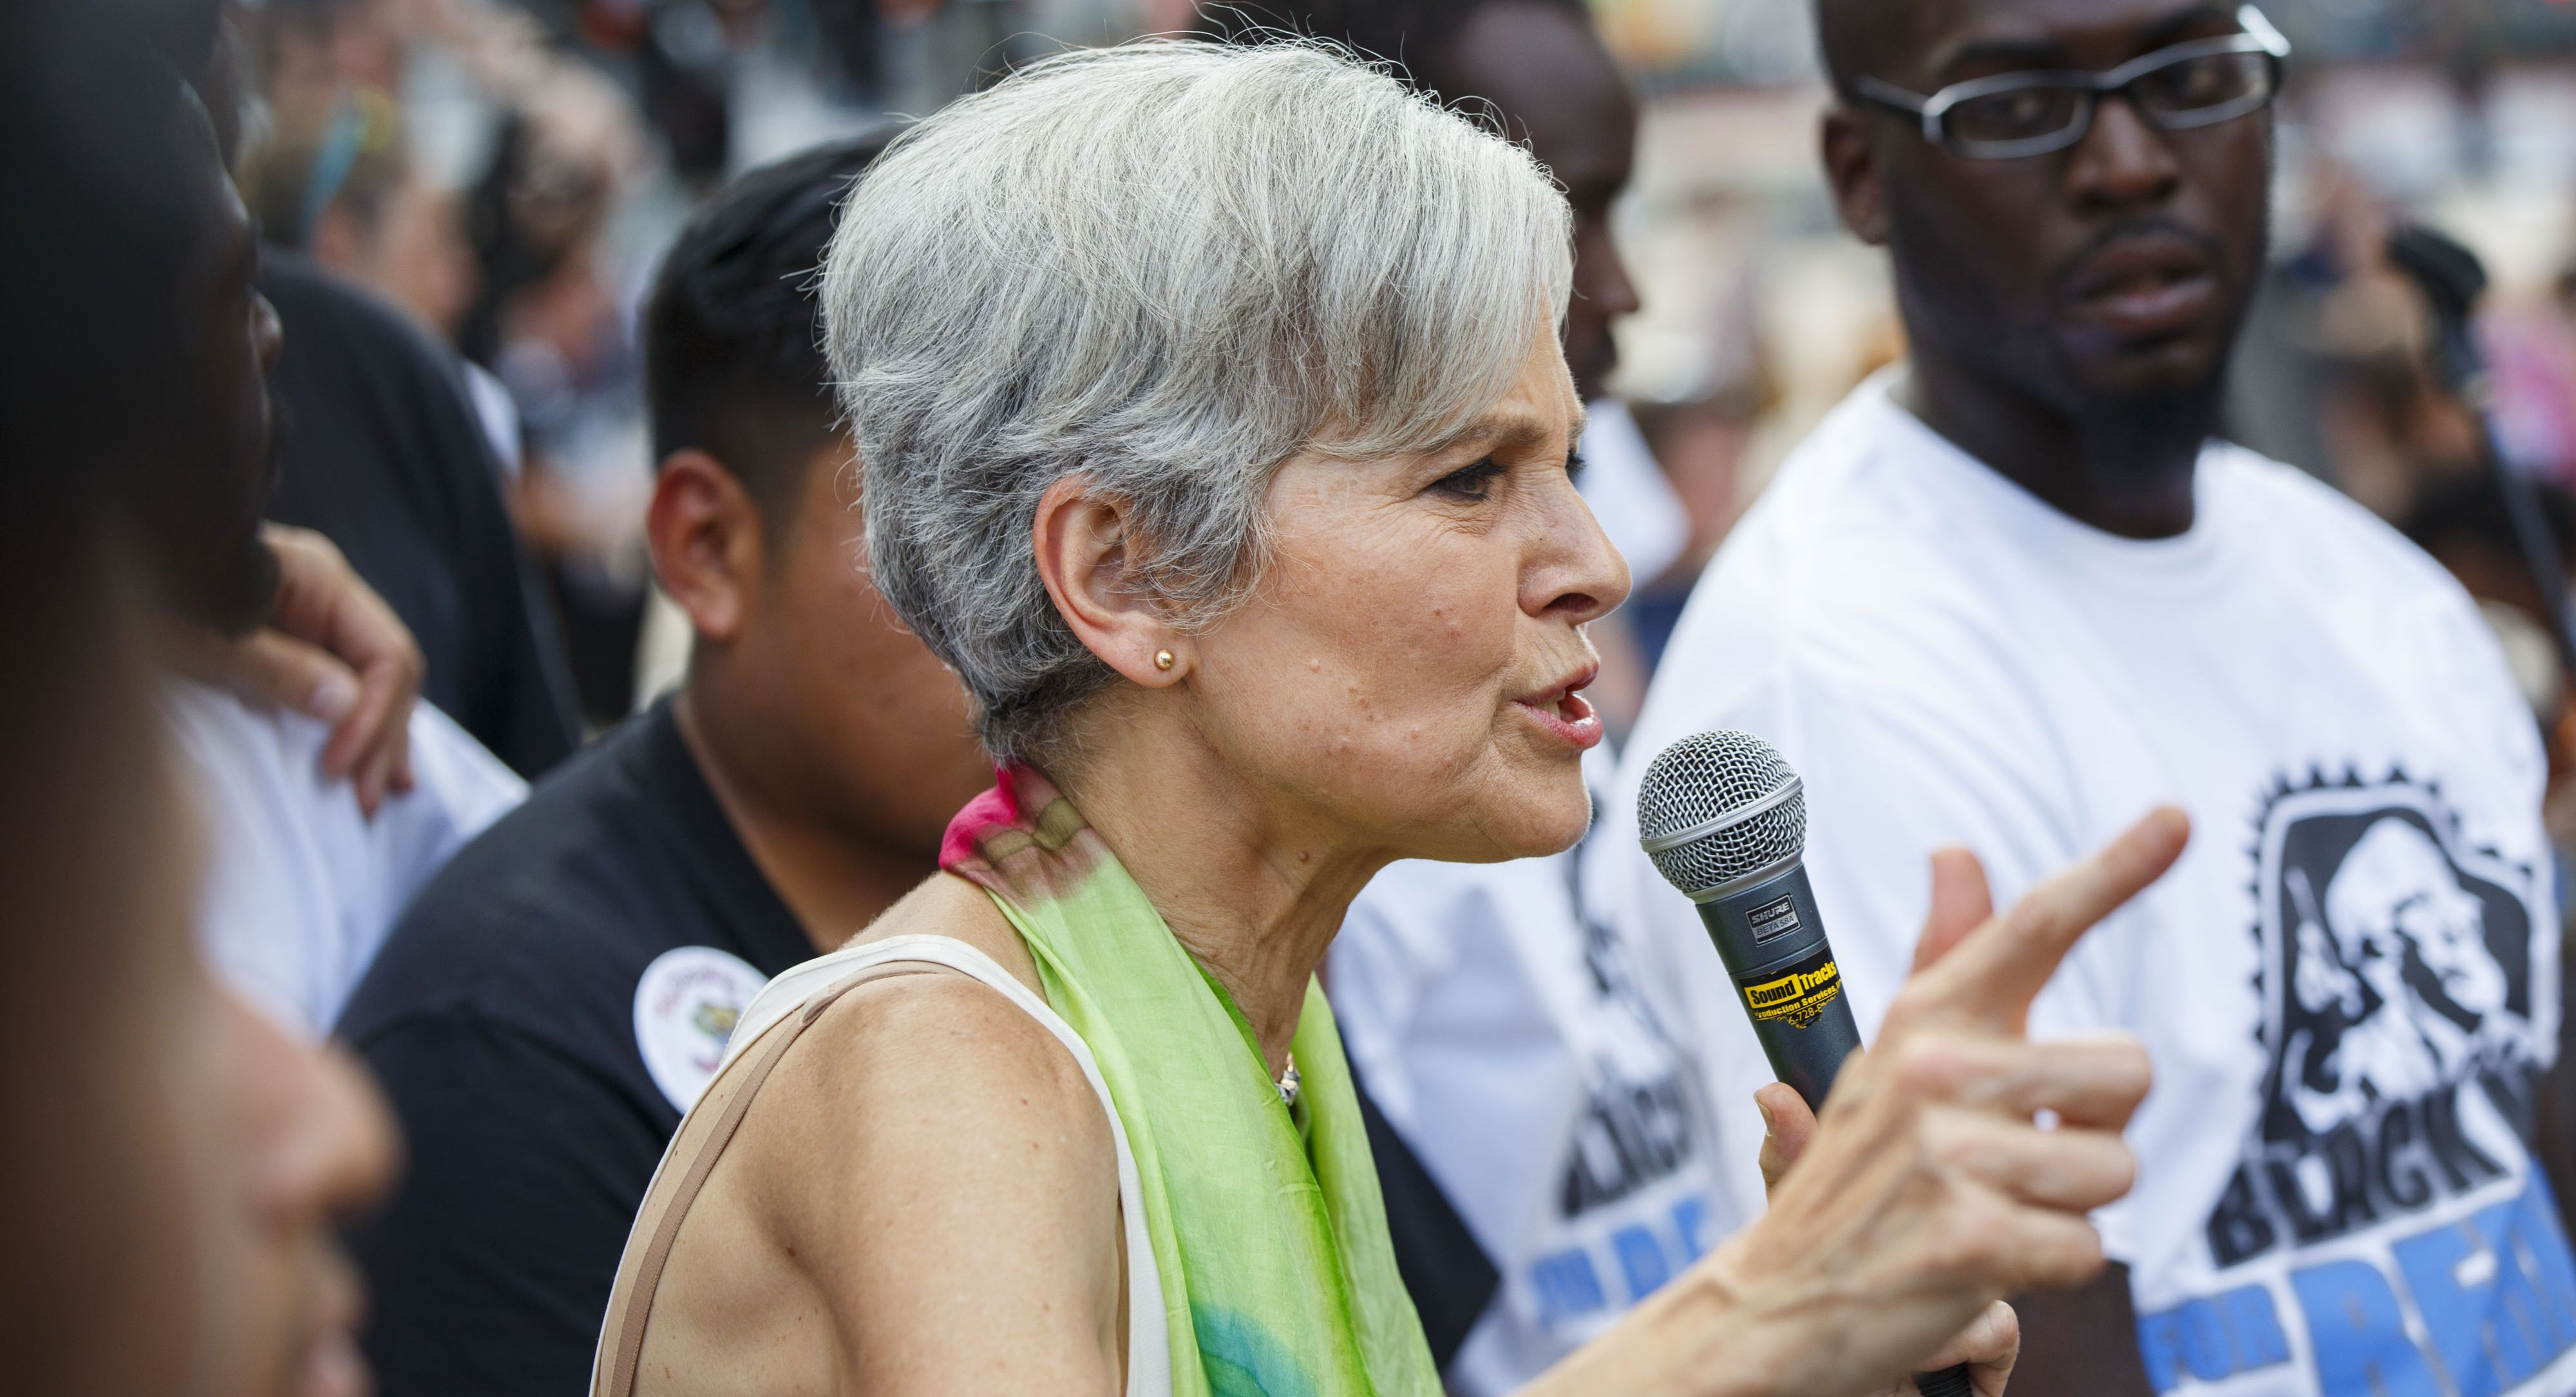 stein and her supporters plan to hold a let jill debate protest